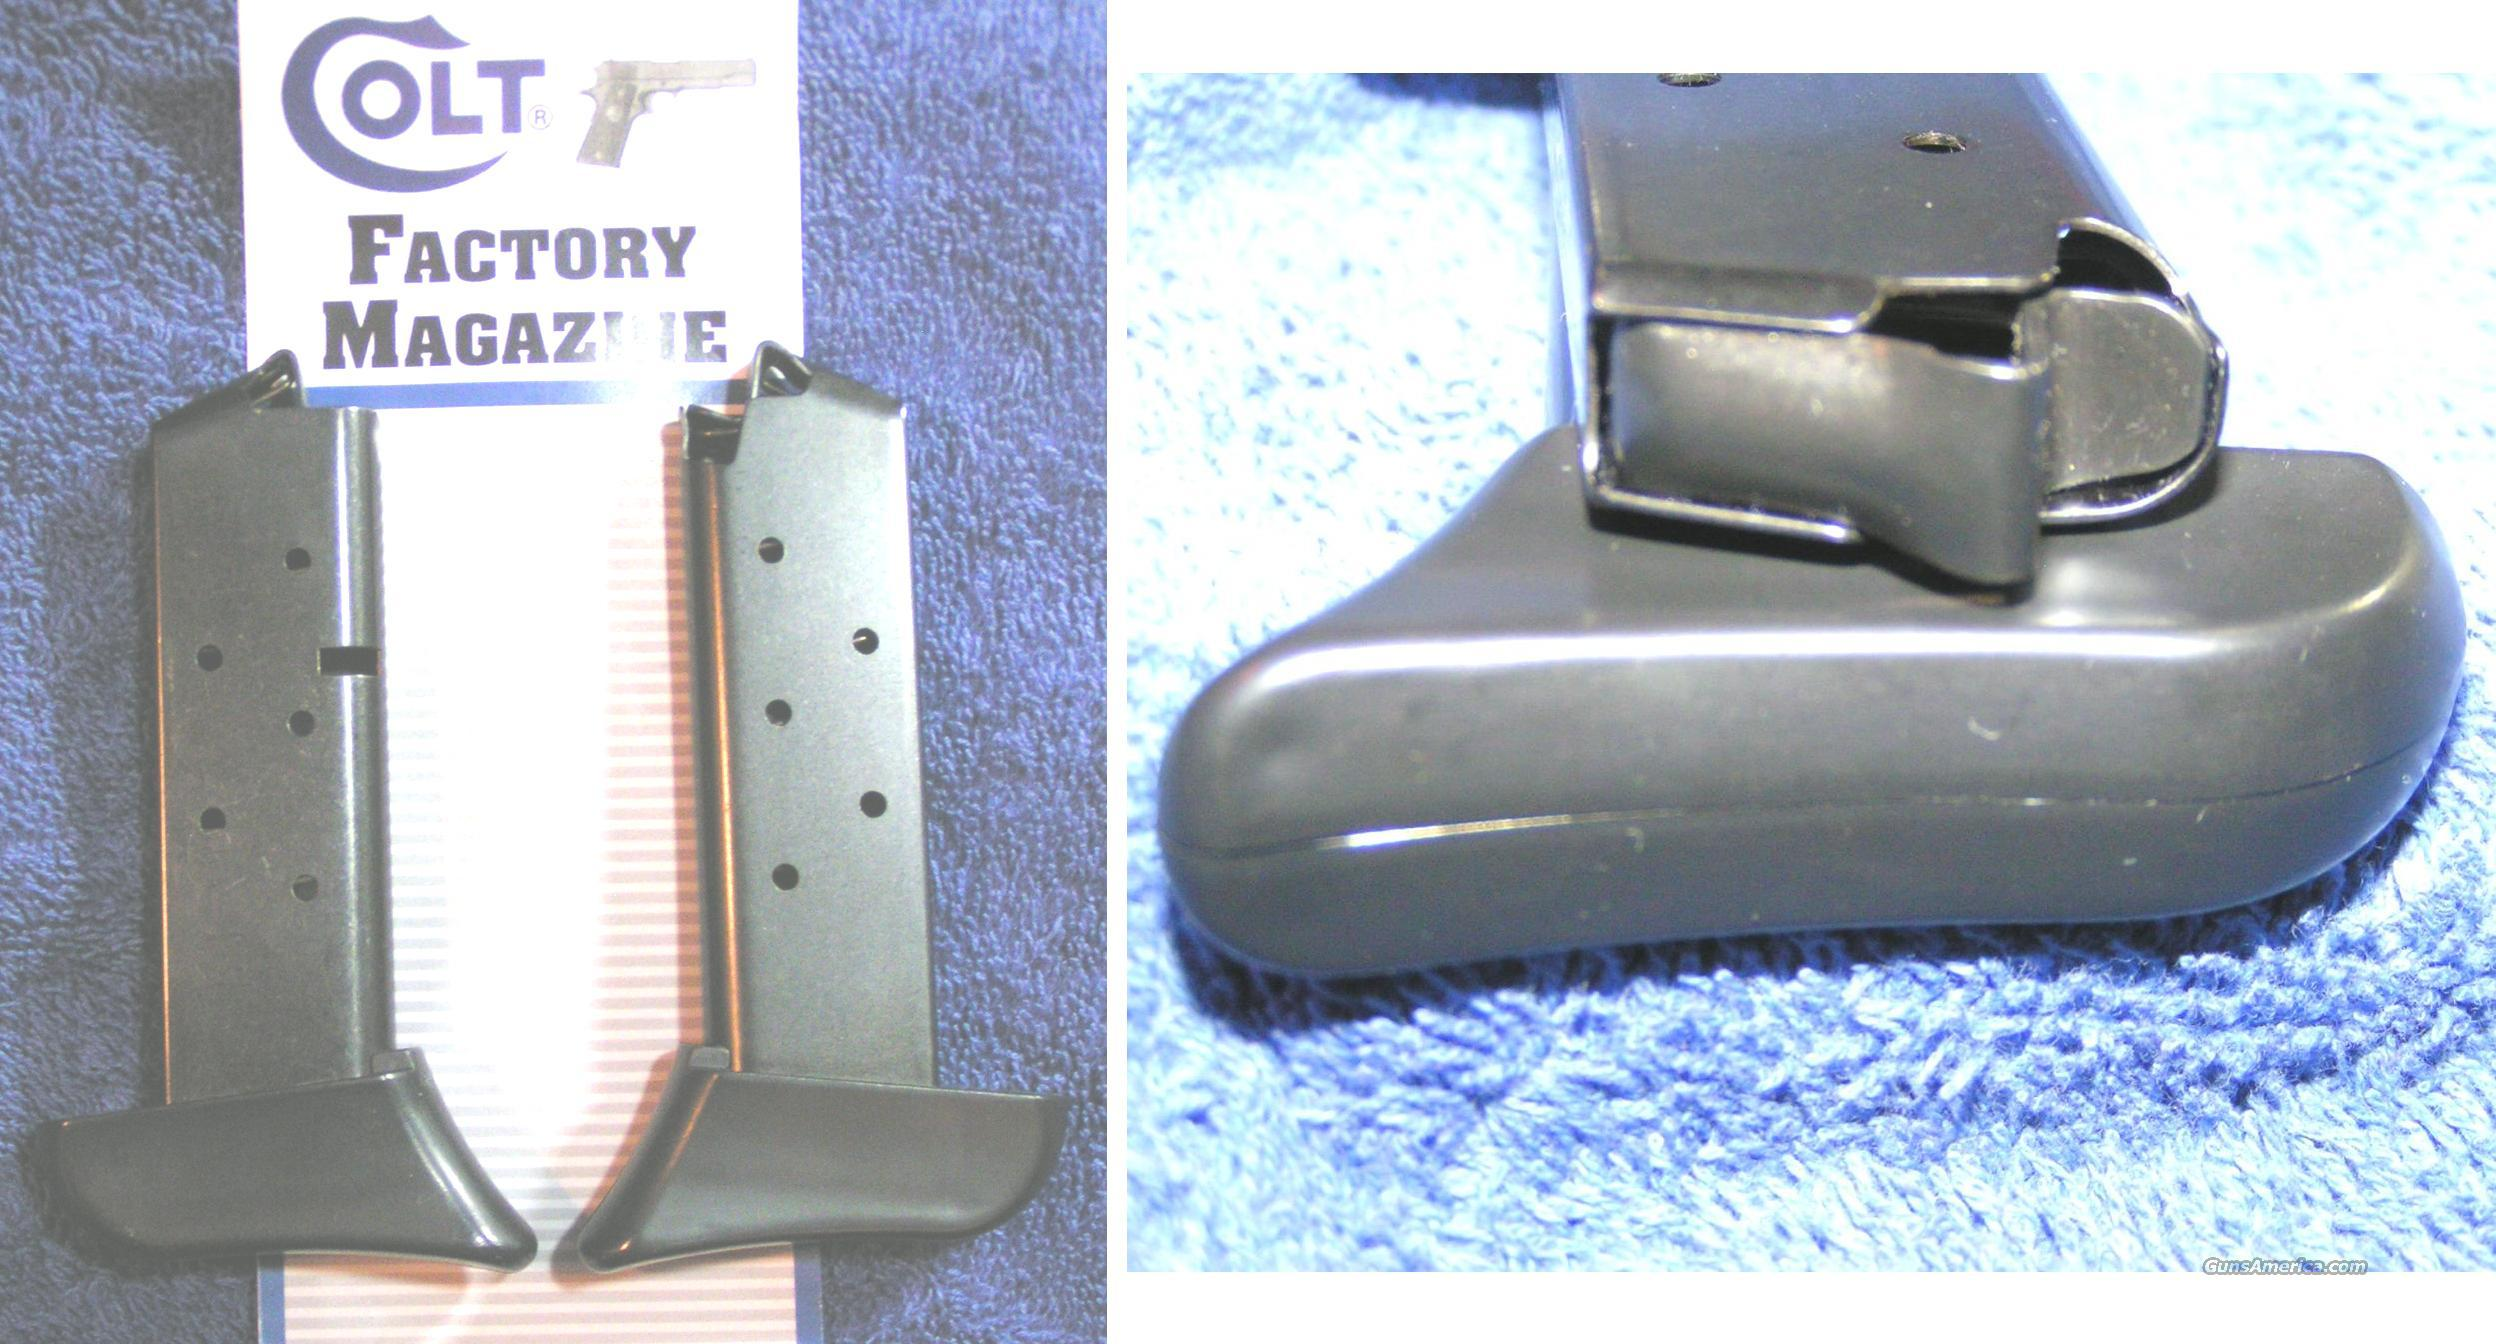 2 Colt Mustang mags. Blue 7 round with Finger rest pad $29 each  Non-Guns > Magazines & Clips > Pistol Magazines > Other